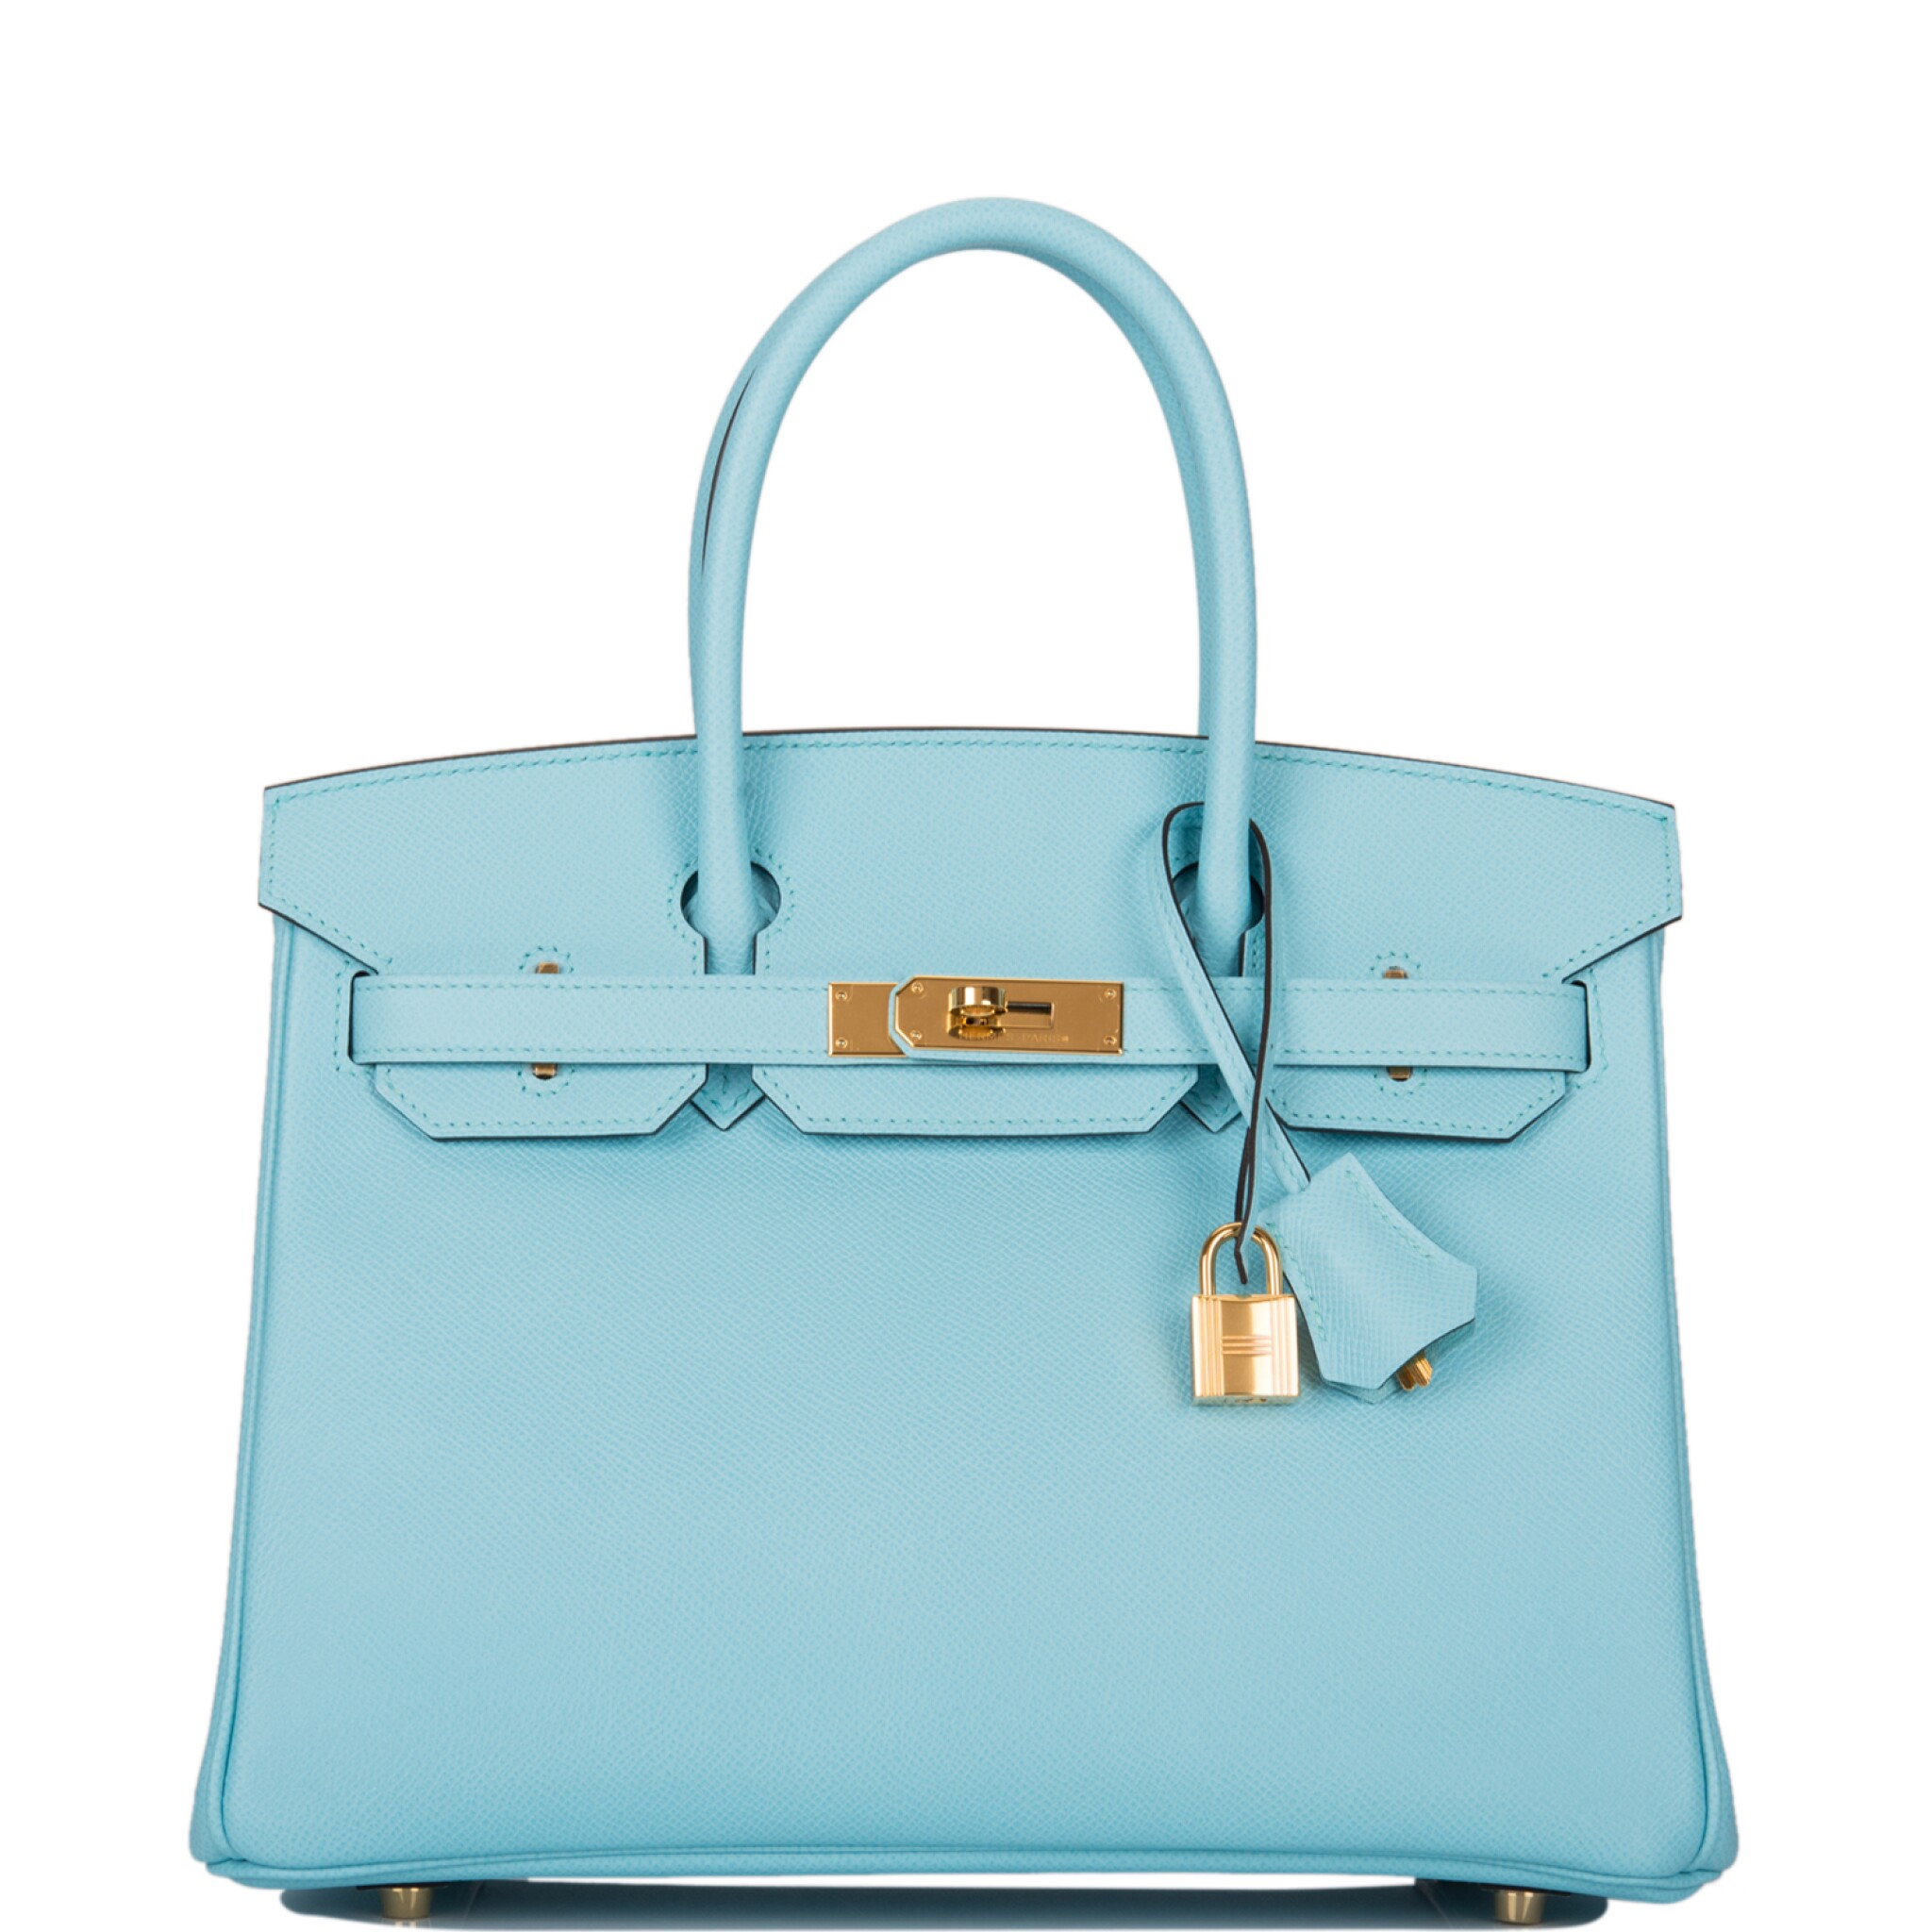 View full screen - View 1 of Lot 18. Hermès Bleu Atoll Birkin 30cm of Epsom Leather with Gold Hardware .